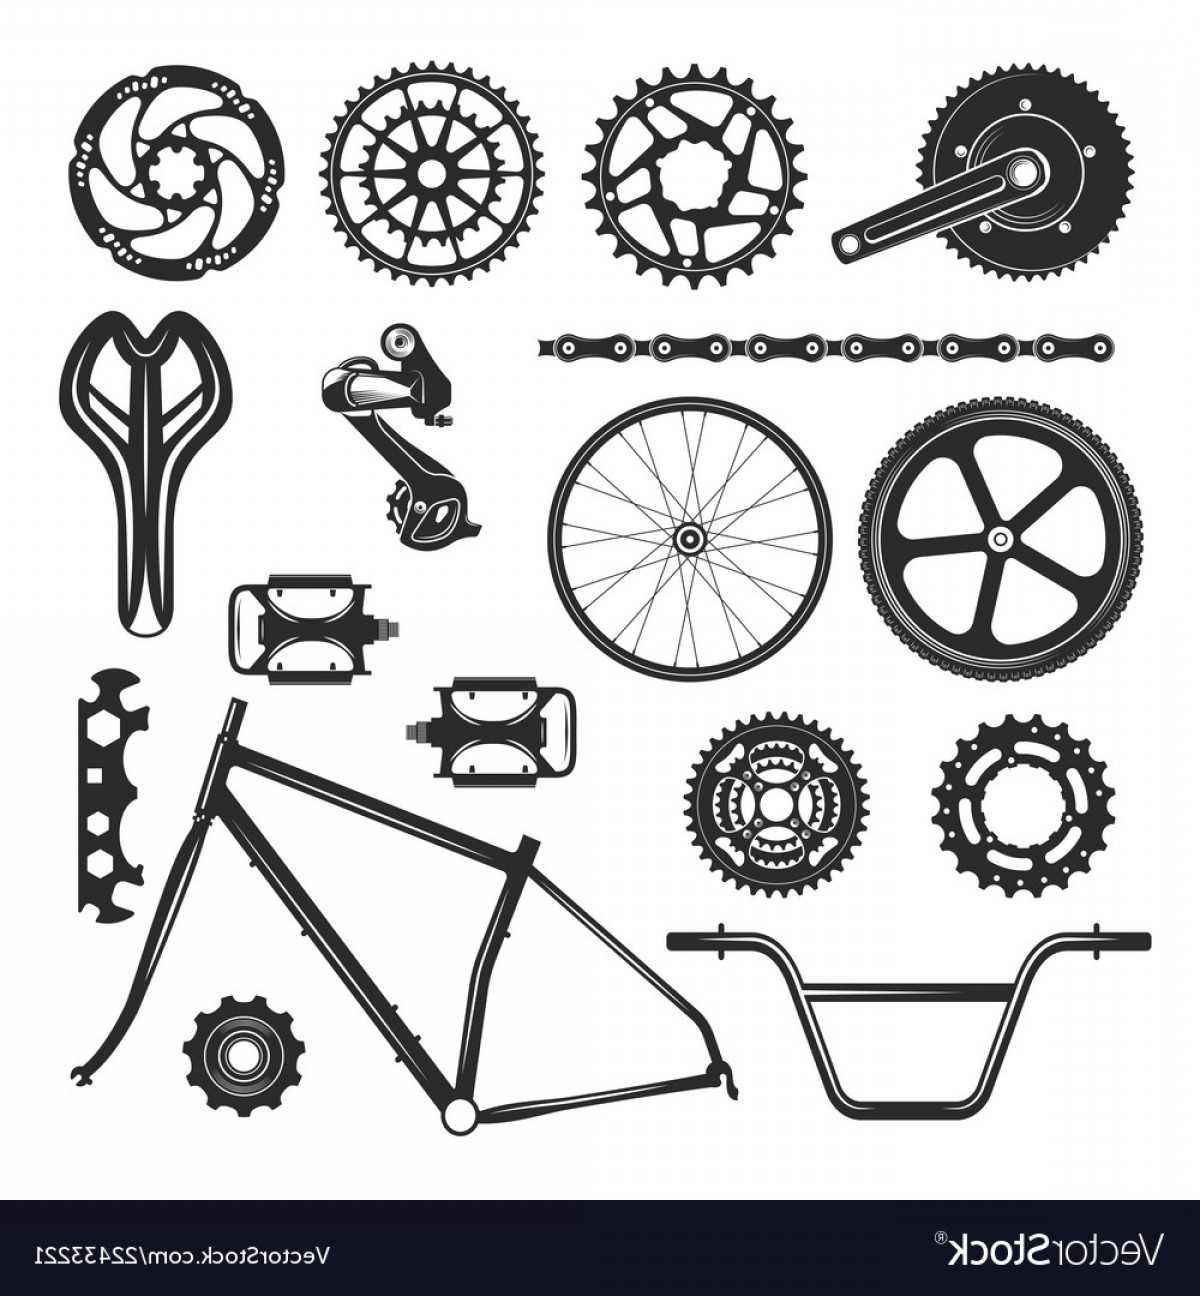 Bicycle Crank Vector Of Artwork: Bicycle Repair Parts Set Vehicle Element Icon Vector